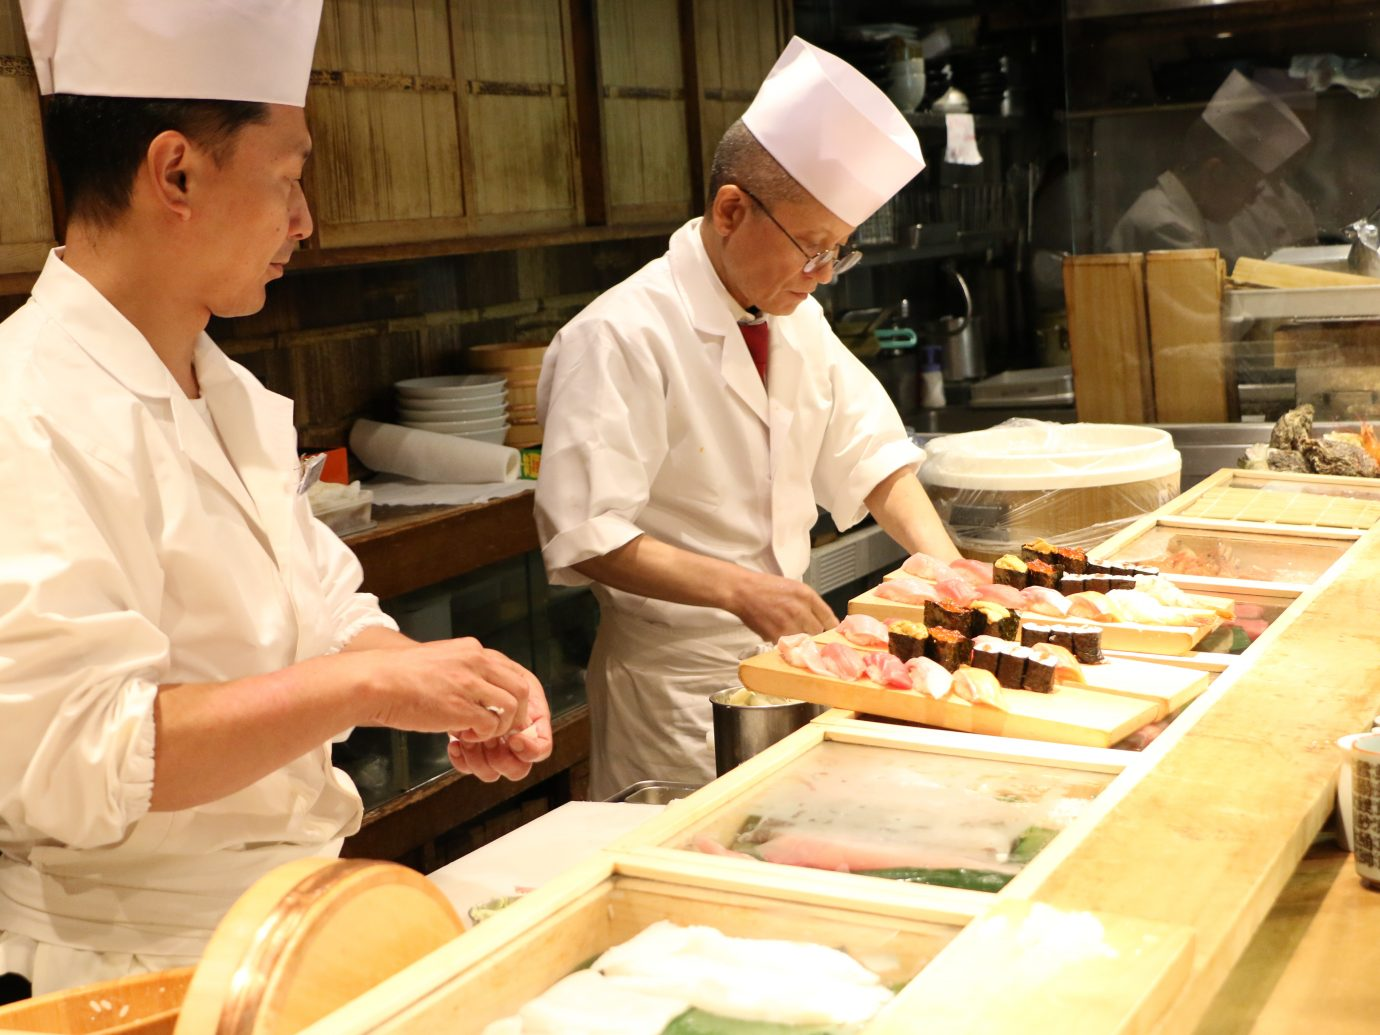 Sushi chefs preparing Sushi plate at small restaurant in Tsukiji Fish Market